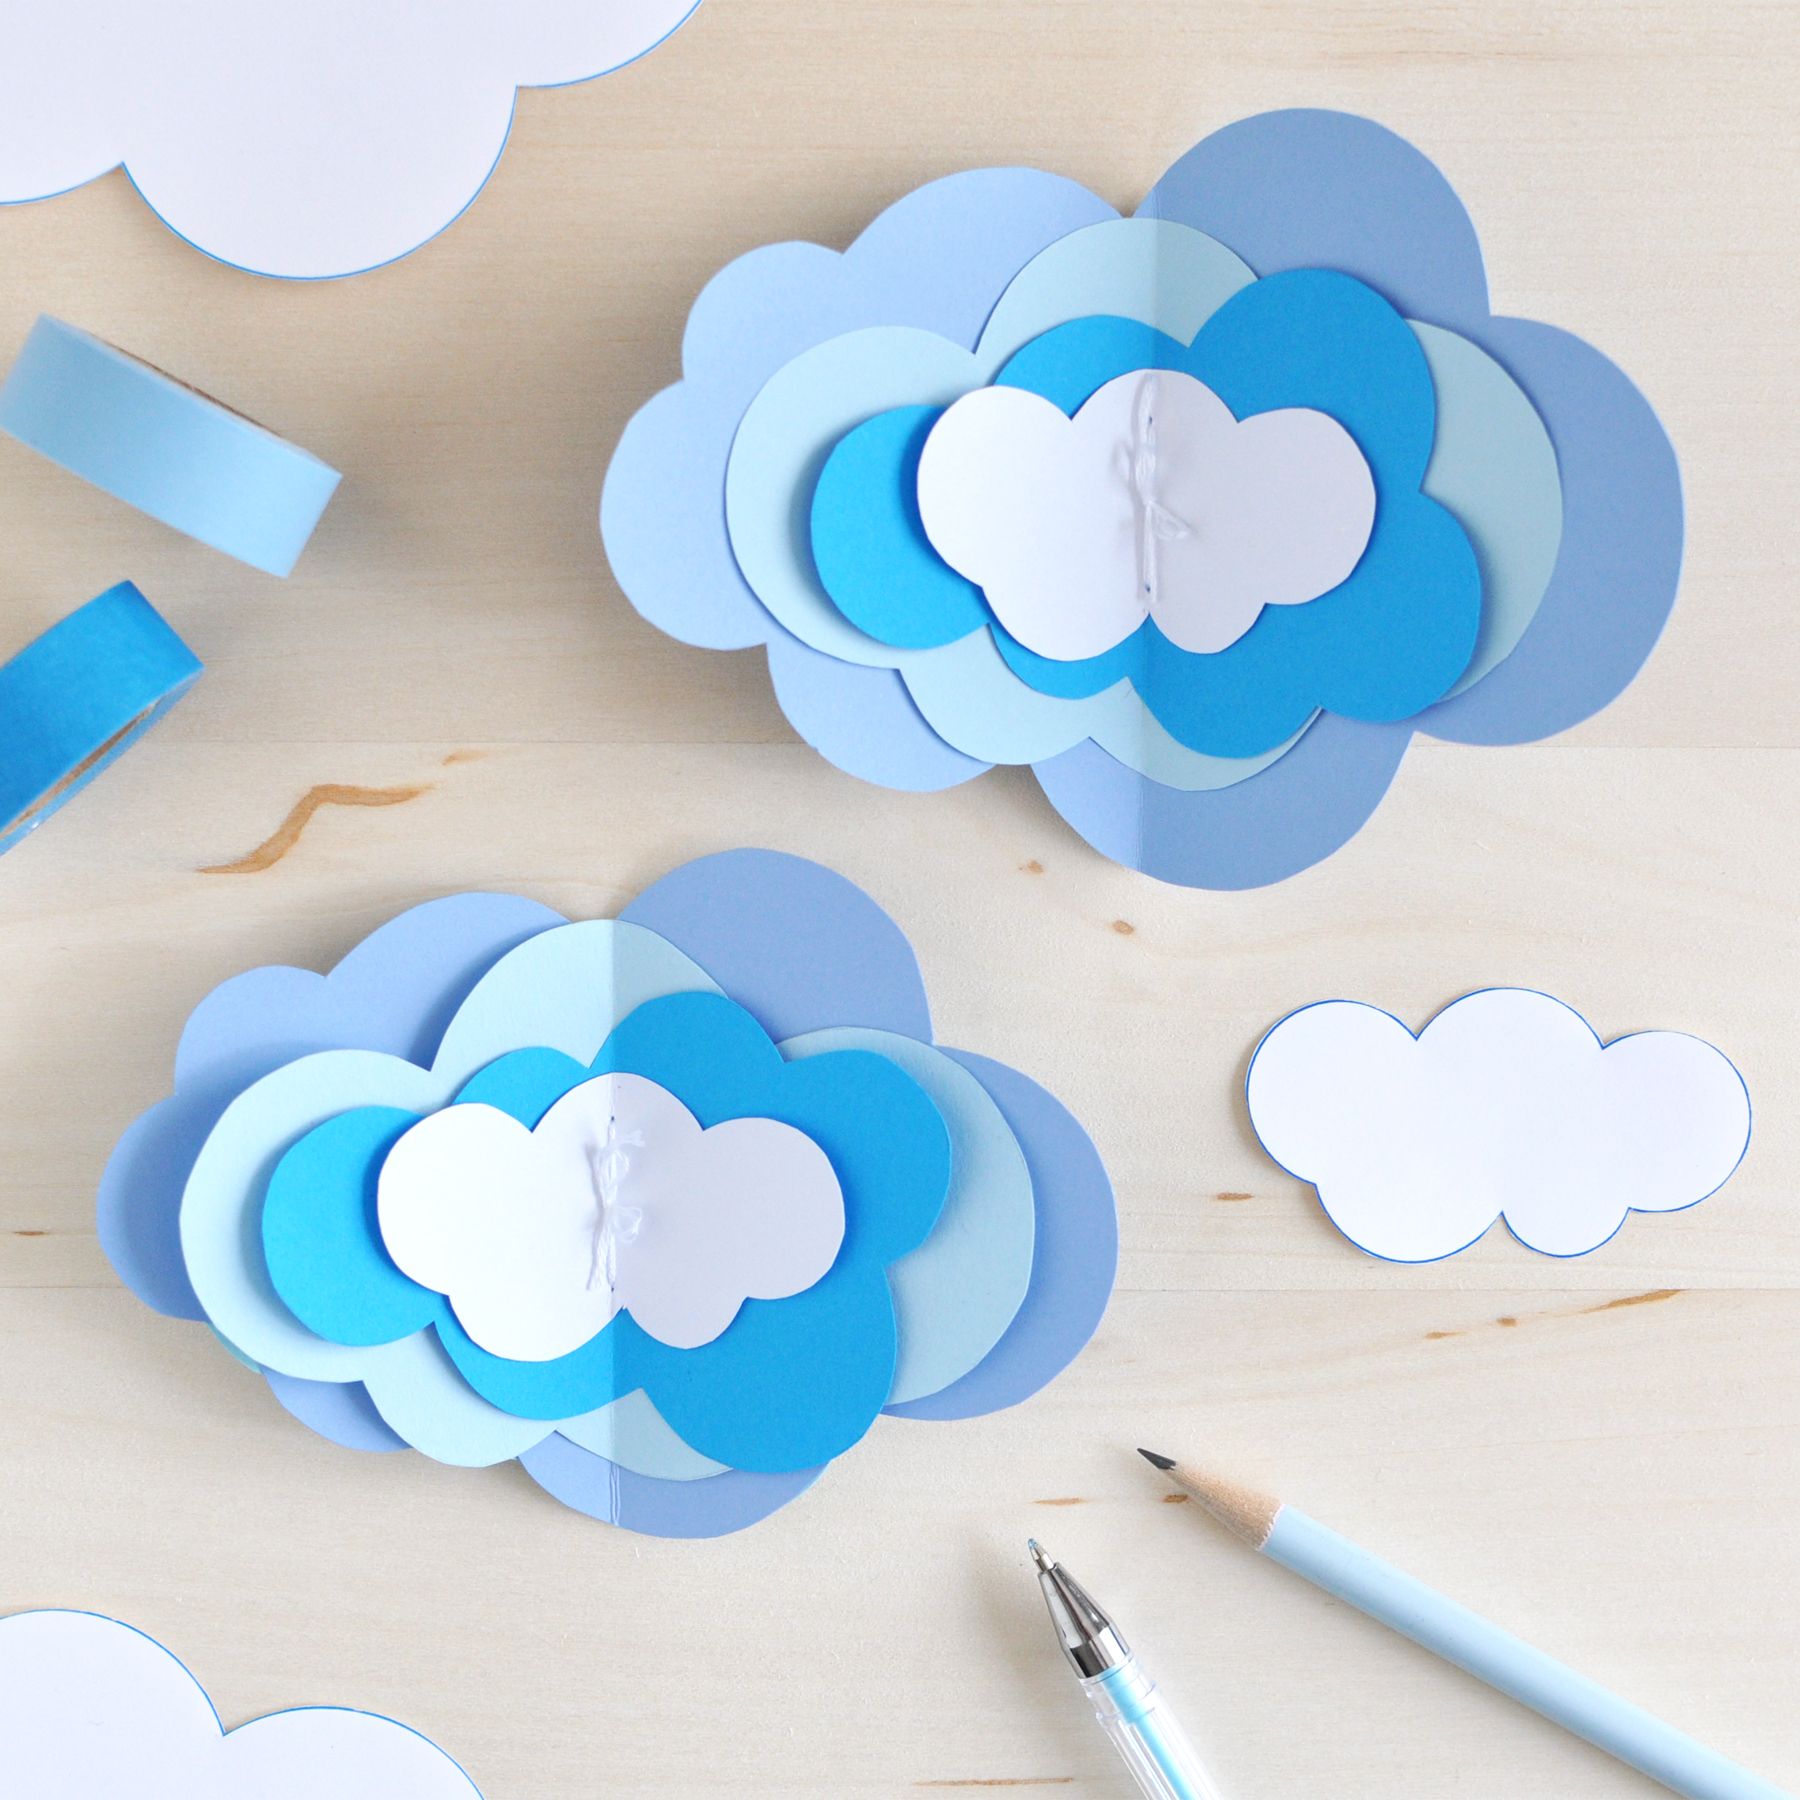 Make-Your-Own-Mini-Cloud-Journal---Image1.jpg